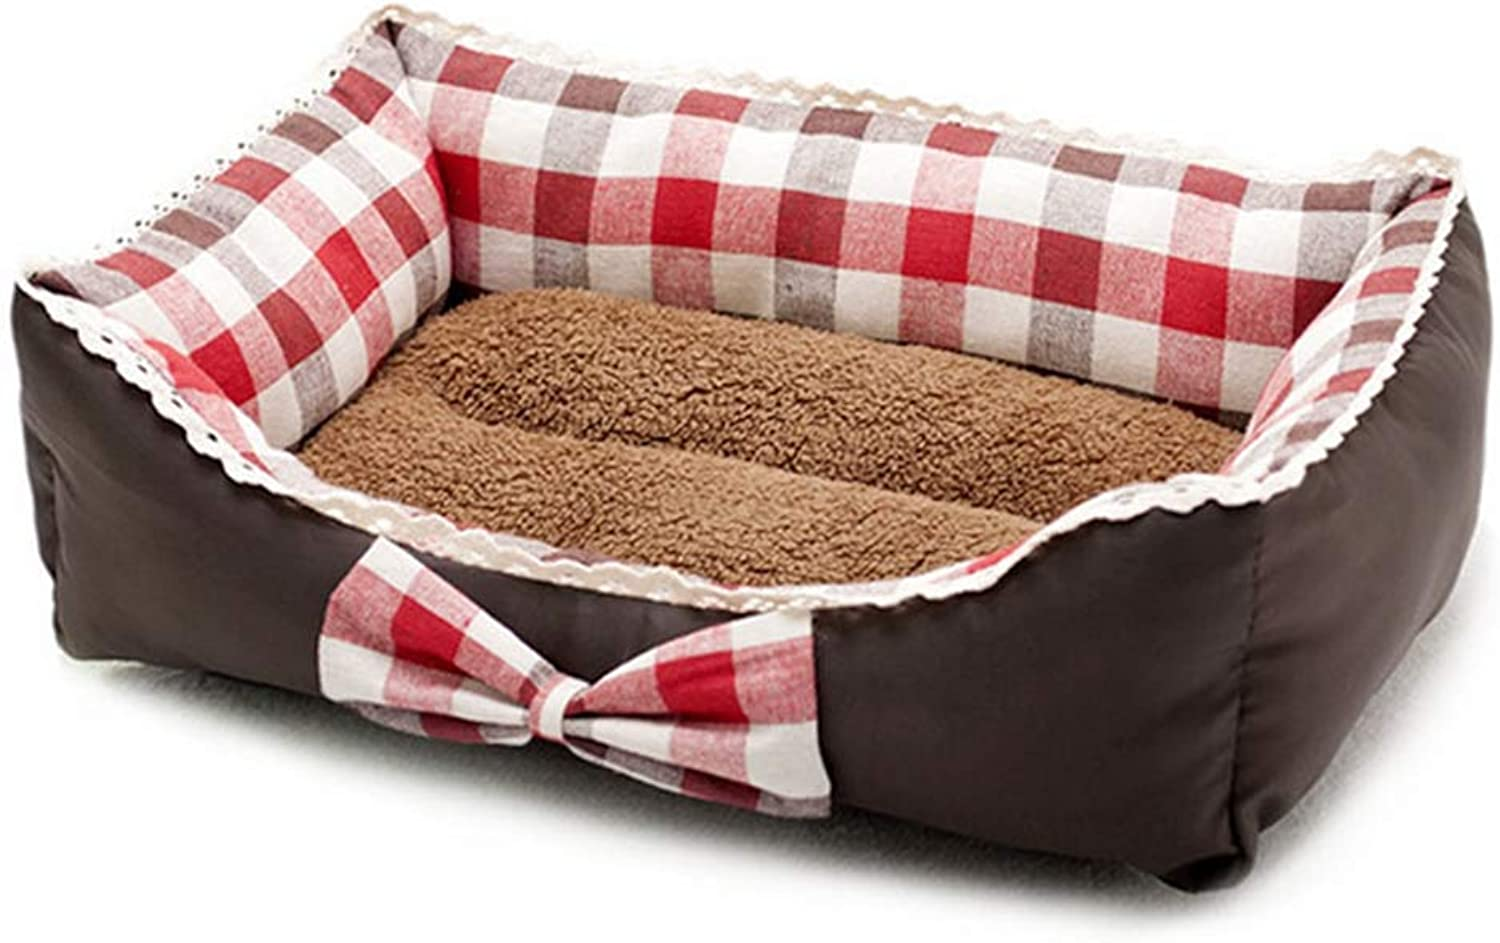 Jim Hugh Soft Warm Dog Beds Sofa Winter Dog Kennel for Small Medium Dogs Cushion Bench Pet Bed Mat Warm Pet Blanket